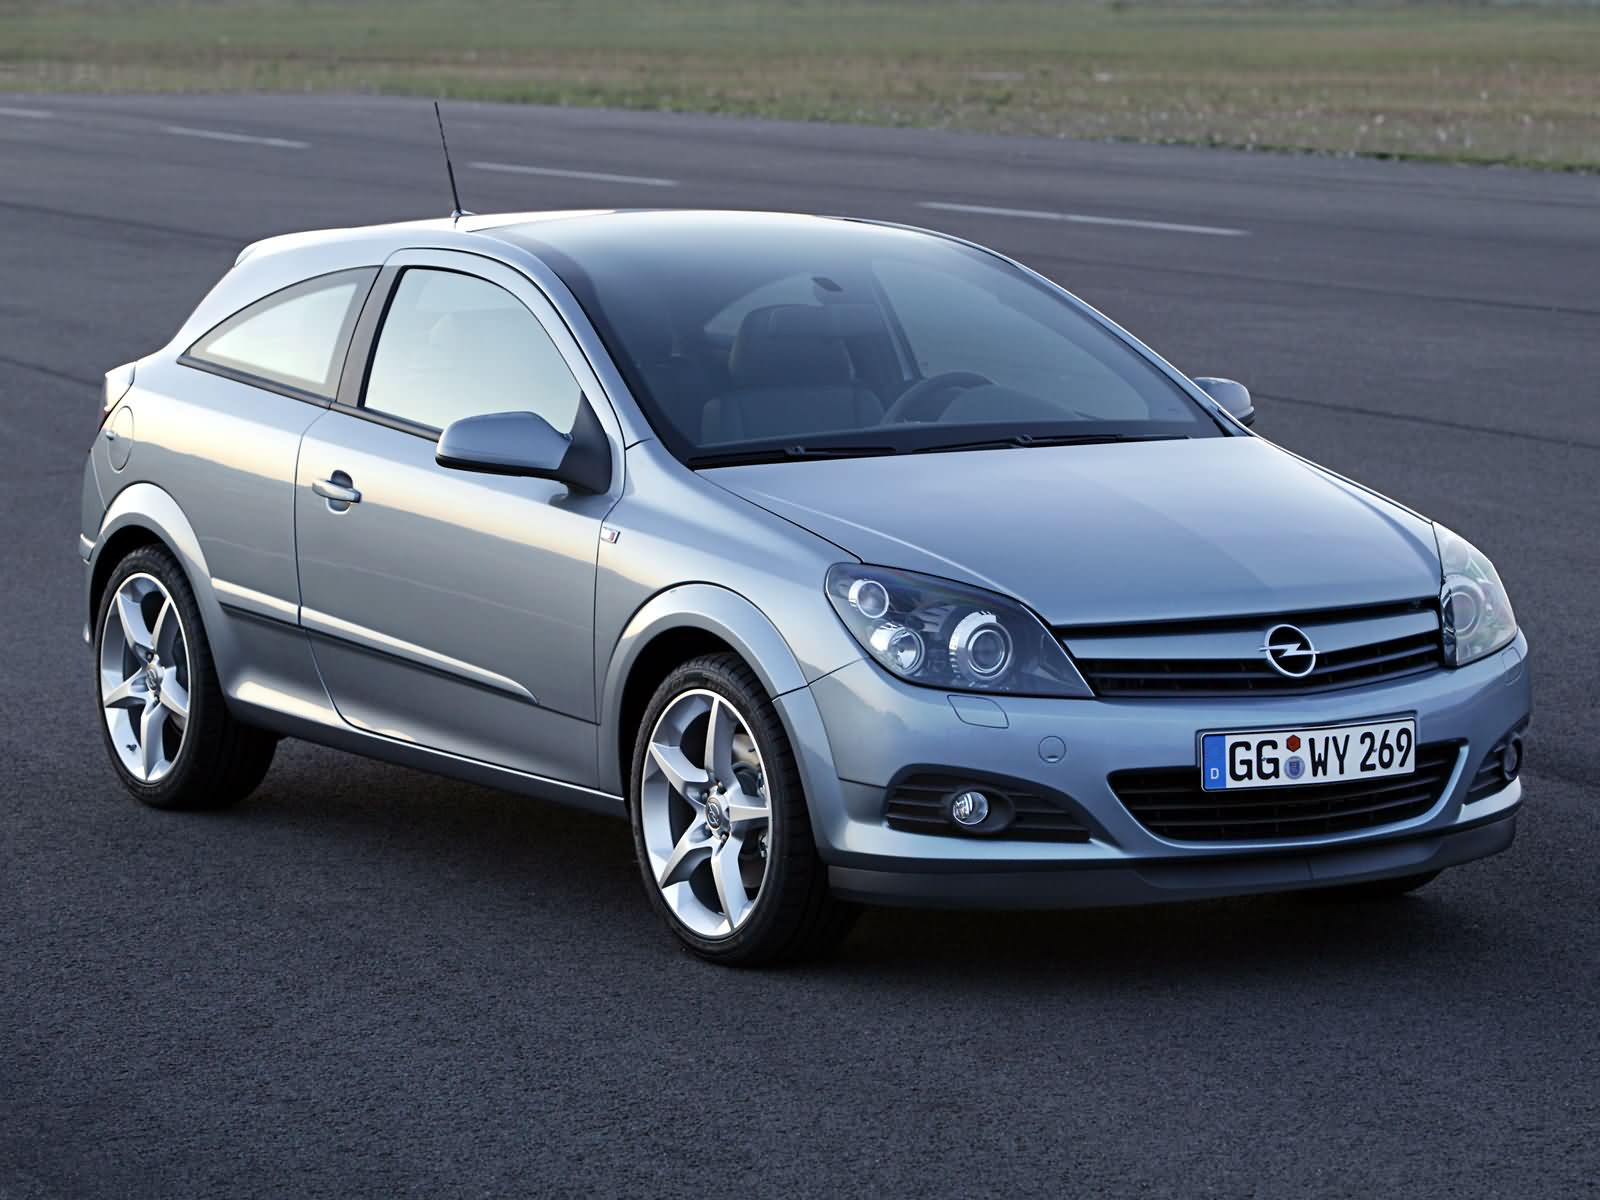 opel astra h gtc 2005 opel astra h gtc 2005 photo 08 car. Black Bedroom Furniture Sets. Home Design Ideas